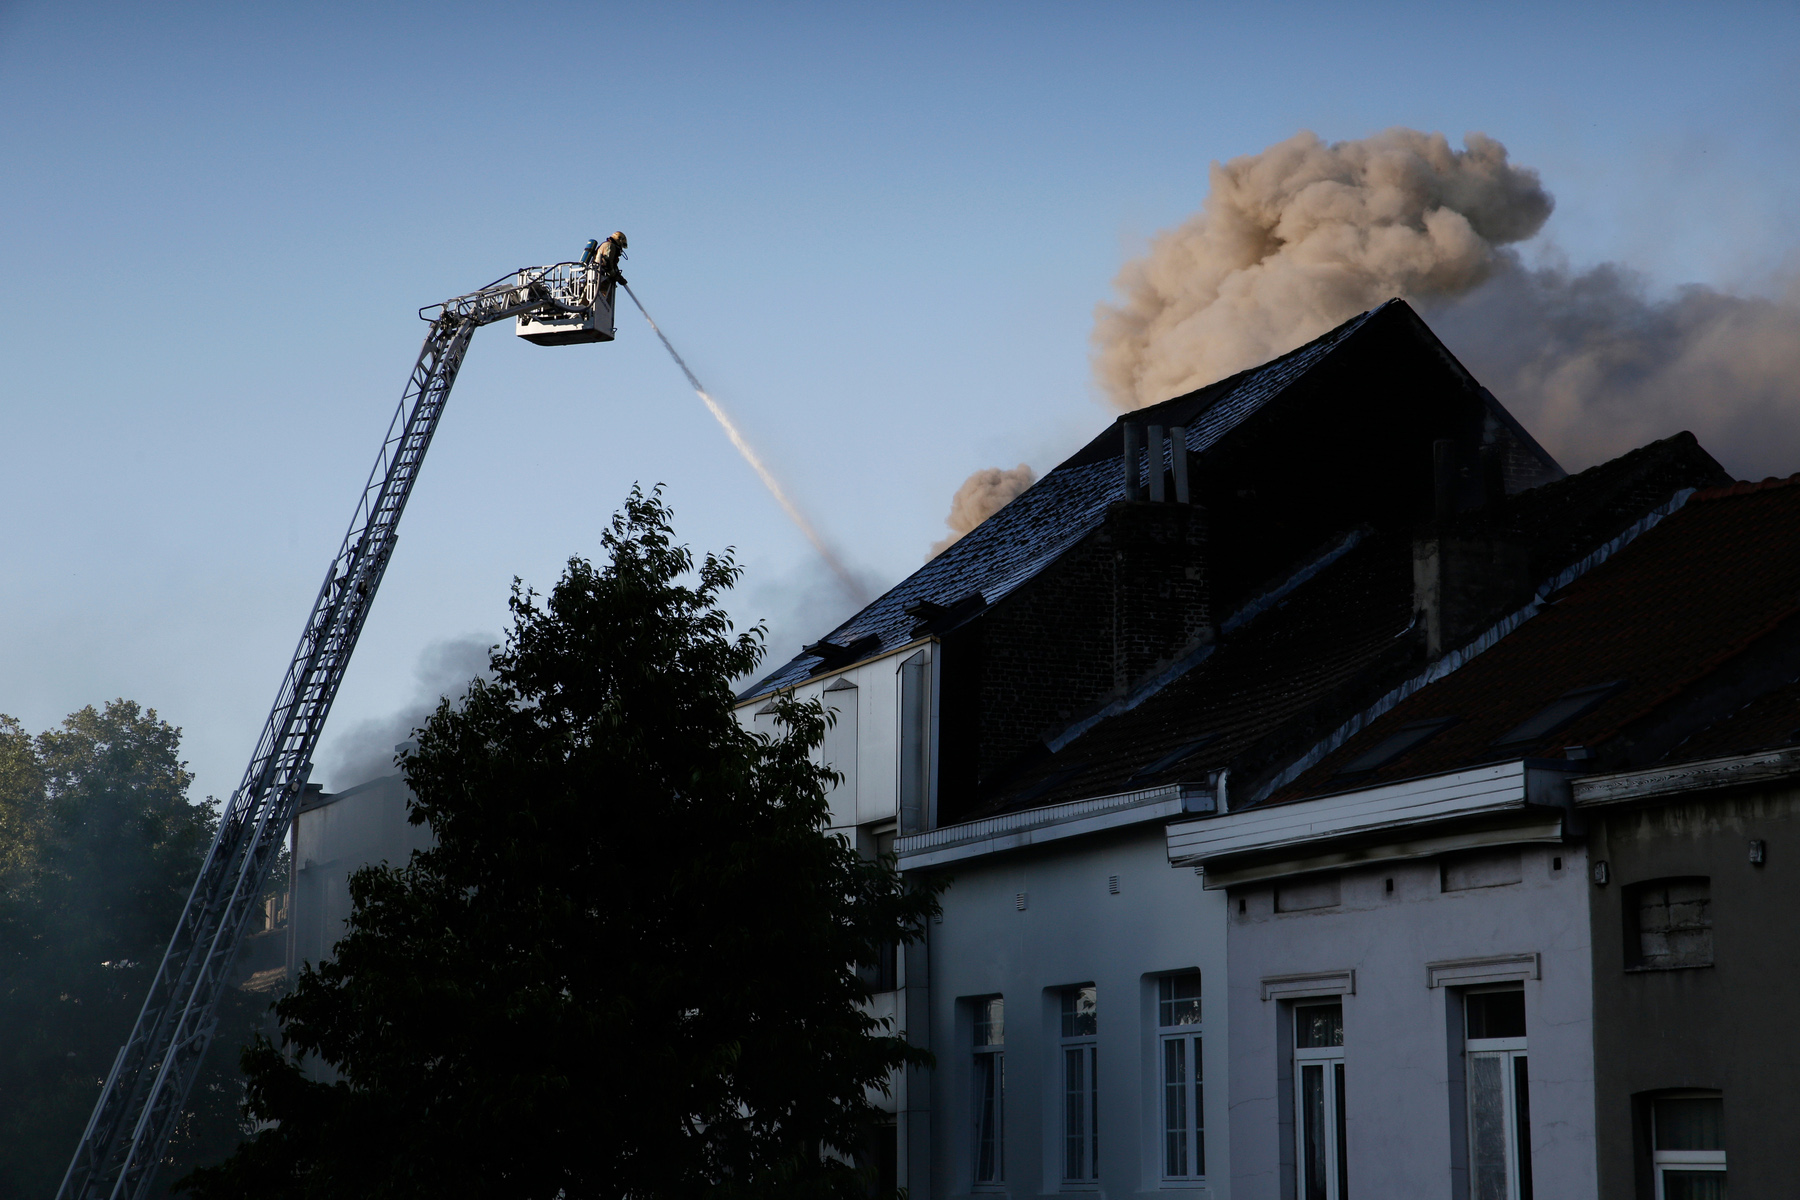 Firefighters responding to a house fire in Belgium